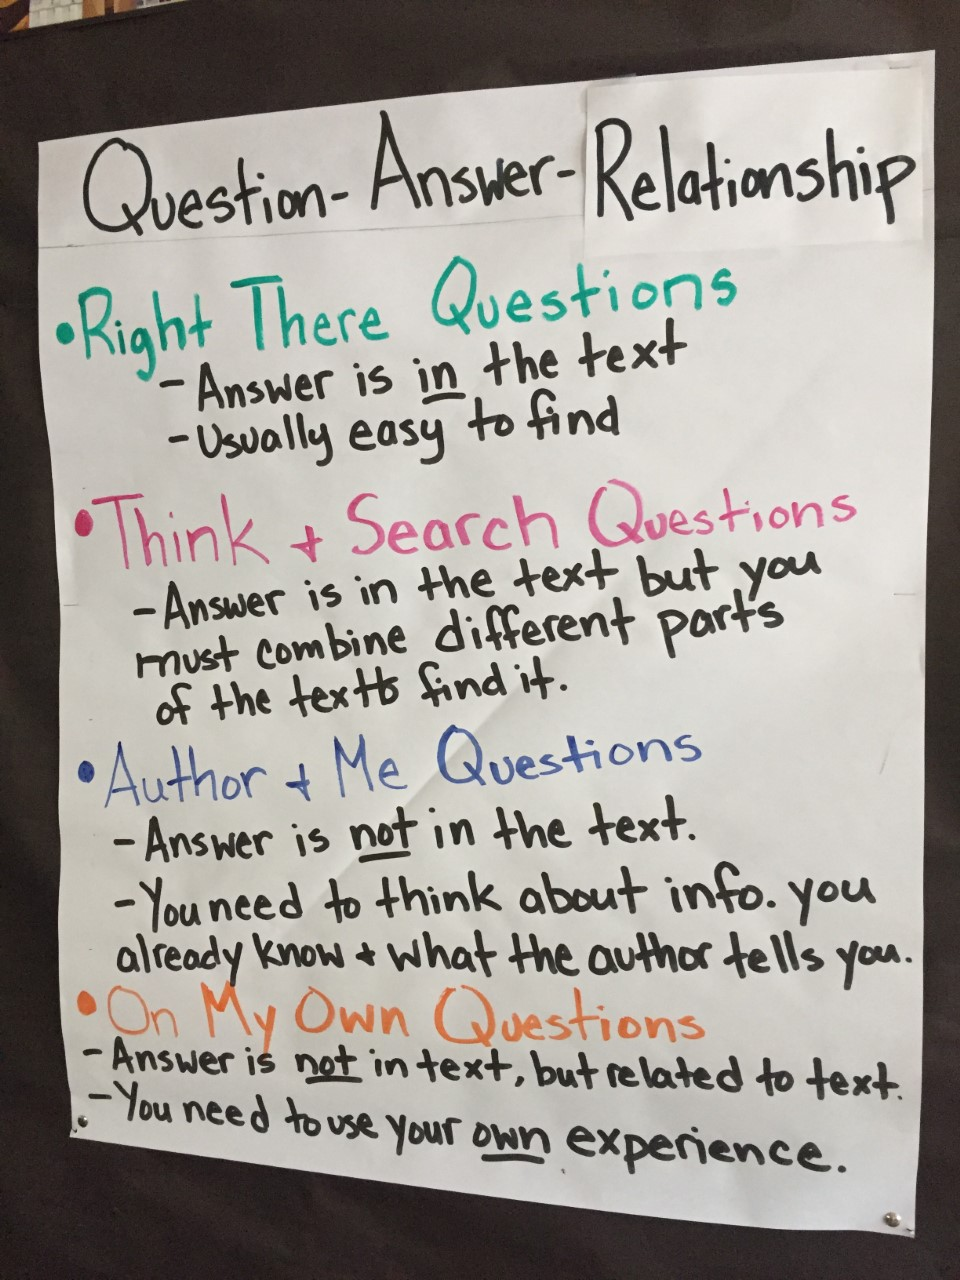 Question-Answer-Relationship